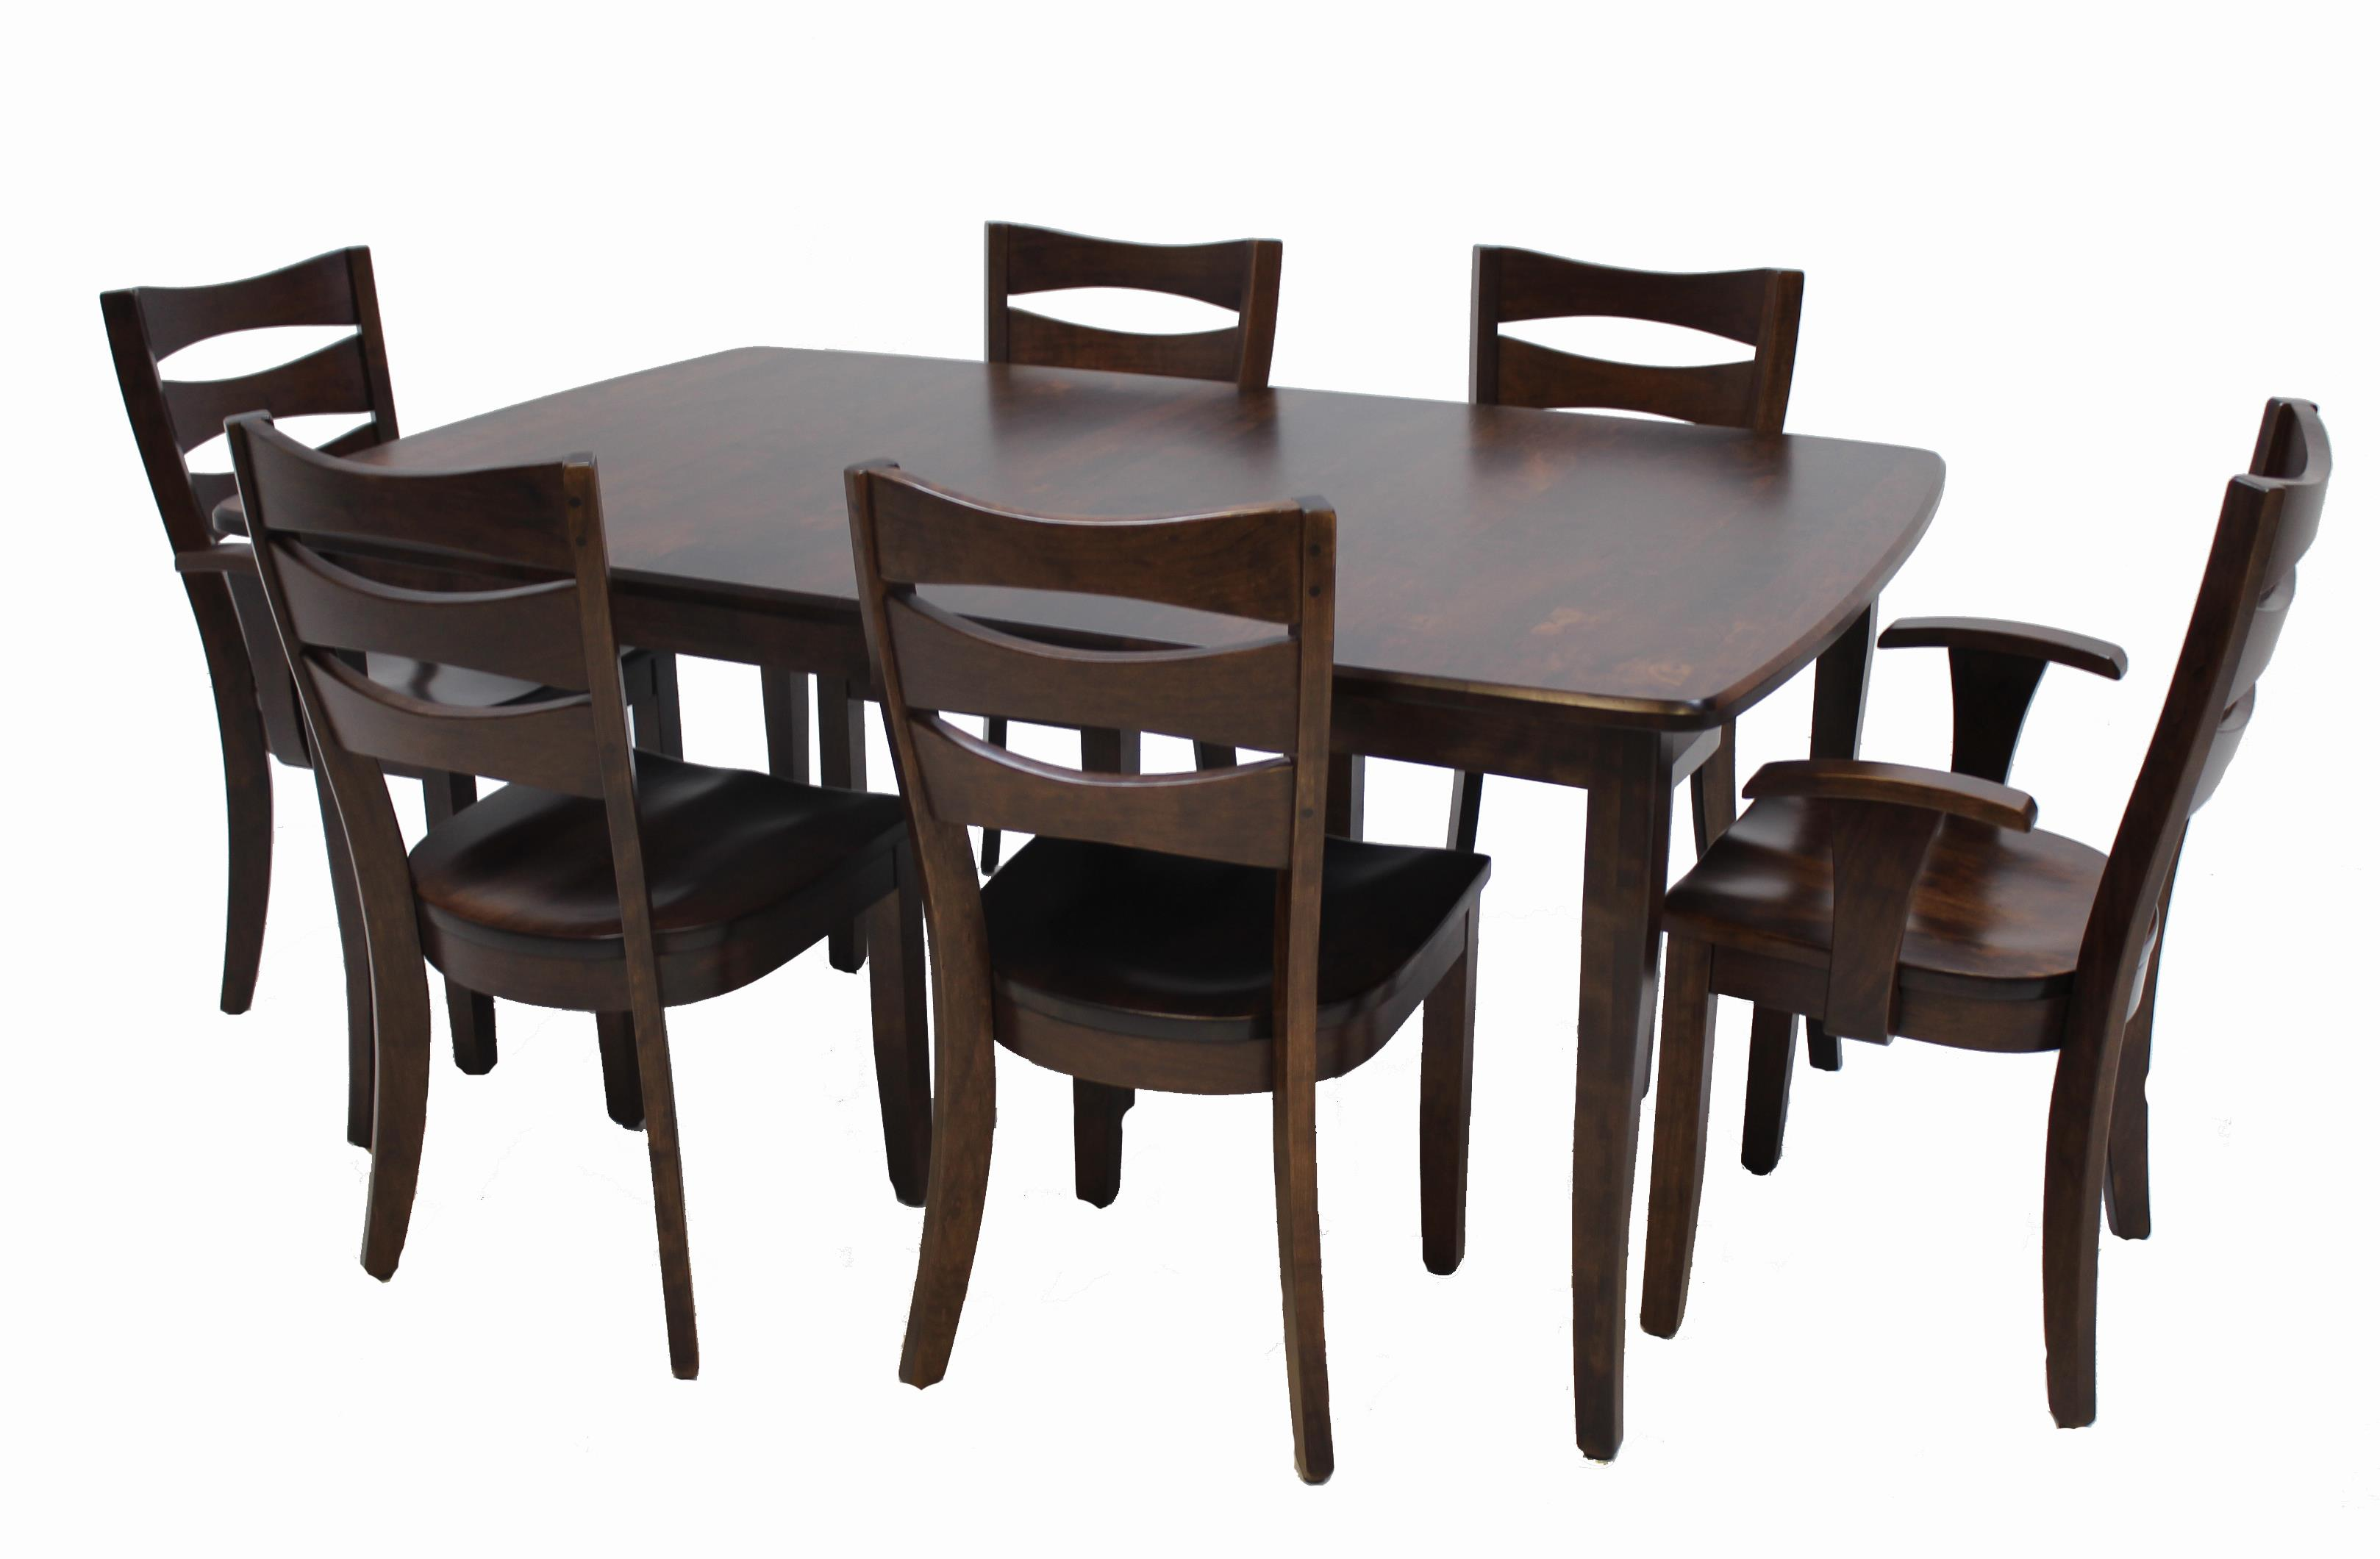 Dining Set Includes Solid Wood Amish Table 6 Chairs At Old Brick